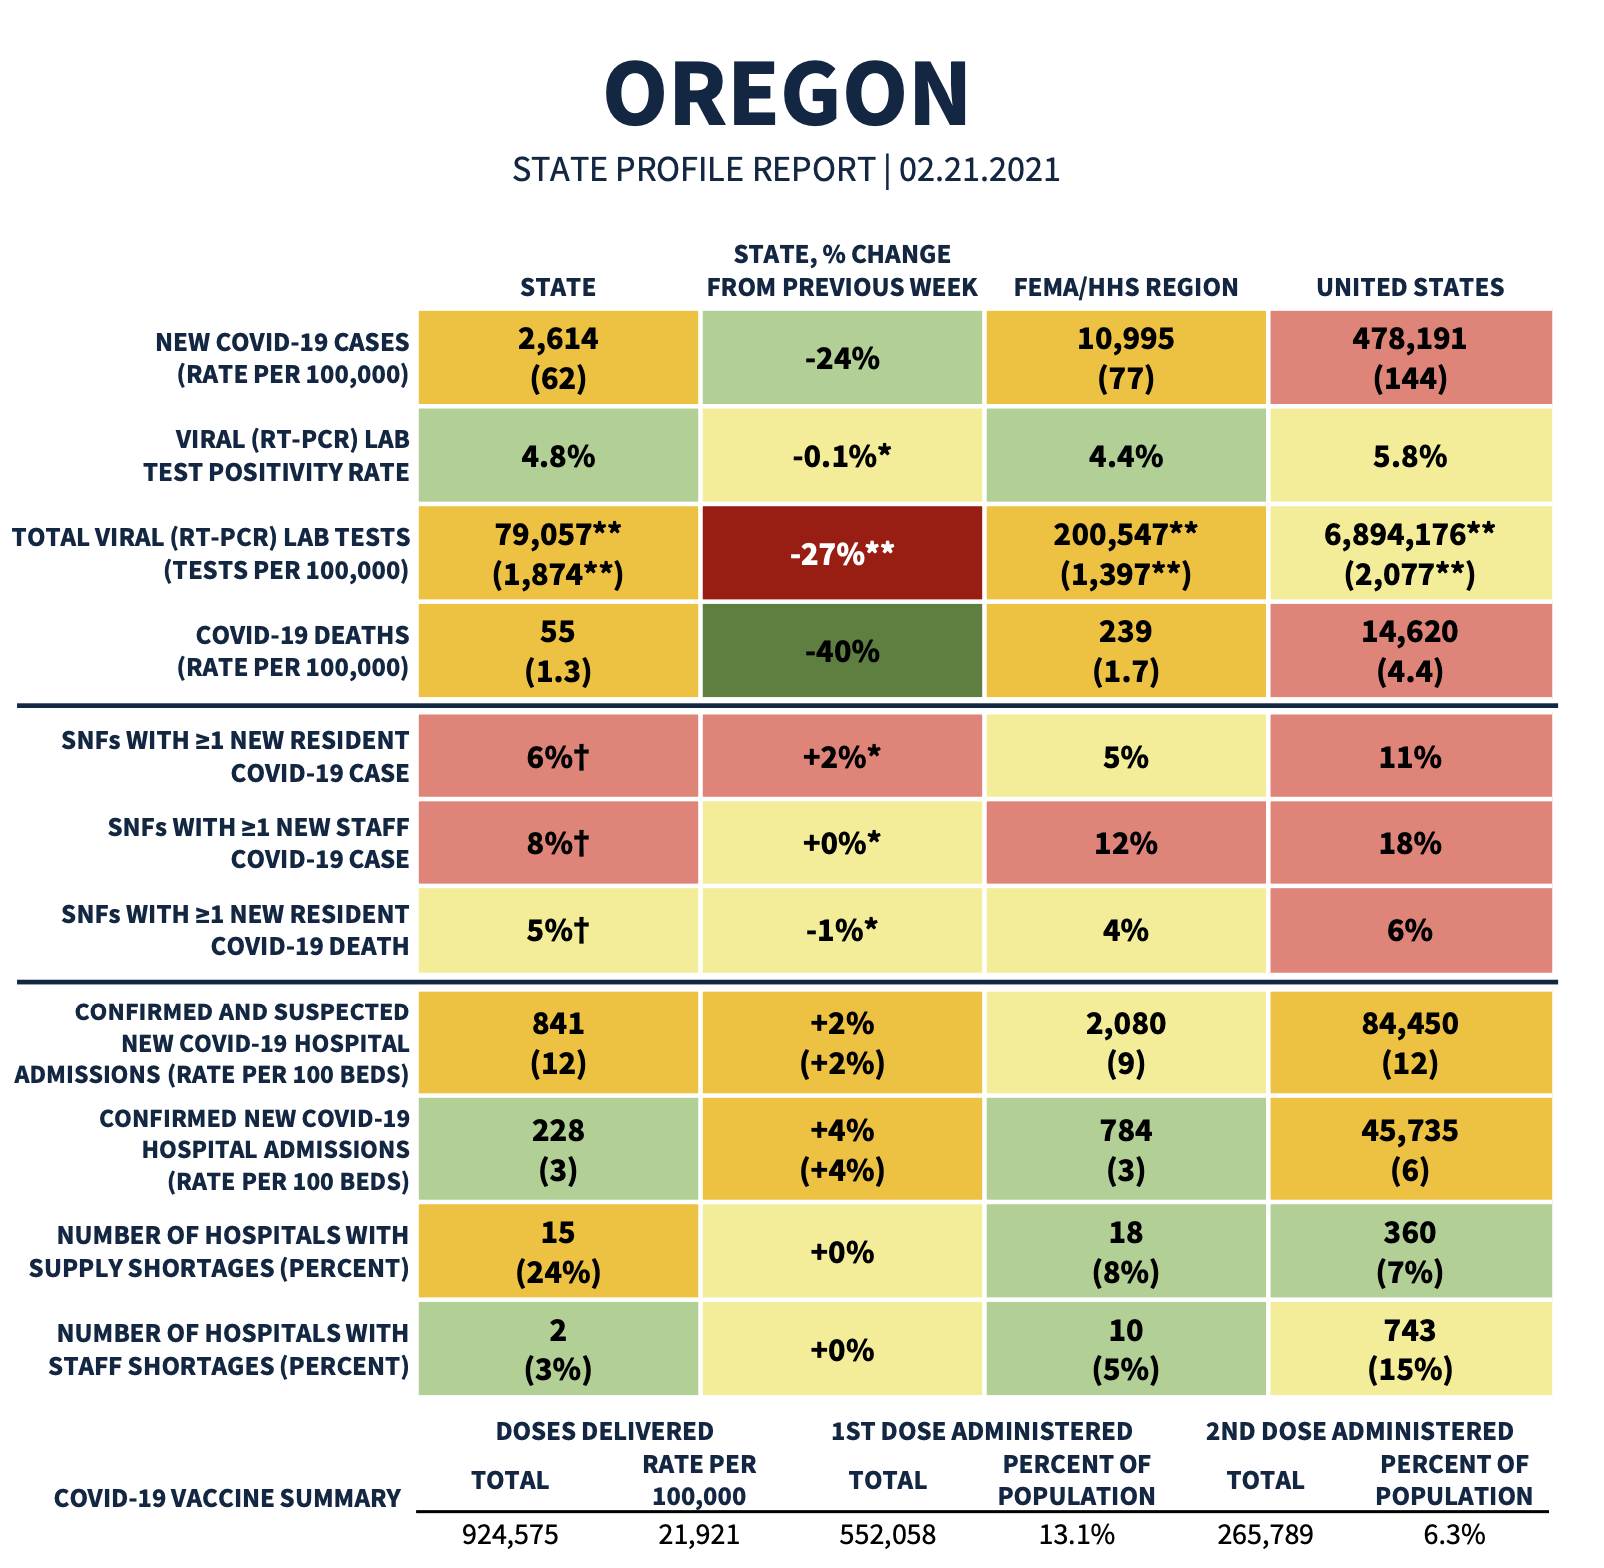 Chart from the federal's State Profile Report for Oregon showing many key COVID-19 metrics, including new cases, test positivity rate, lab tests, deaths, hospital admissions, and hospital shortages for the state, the FEMA region, and the US.